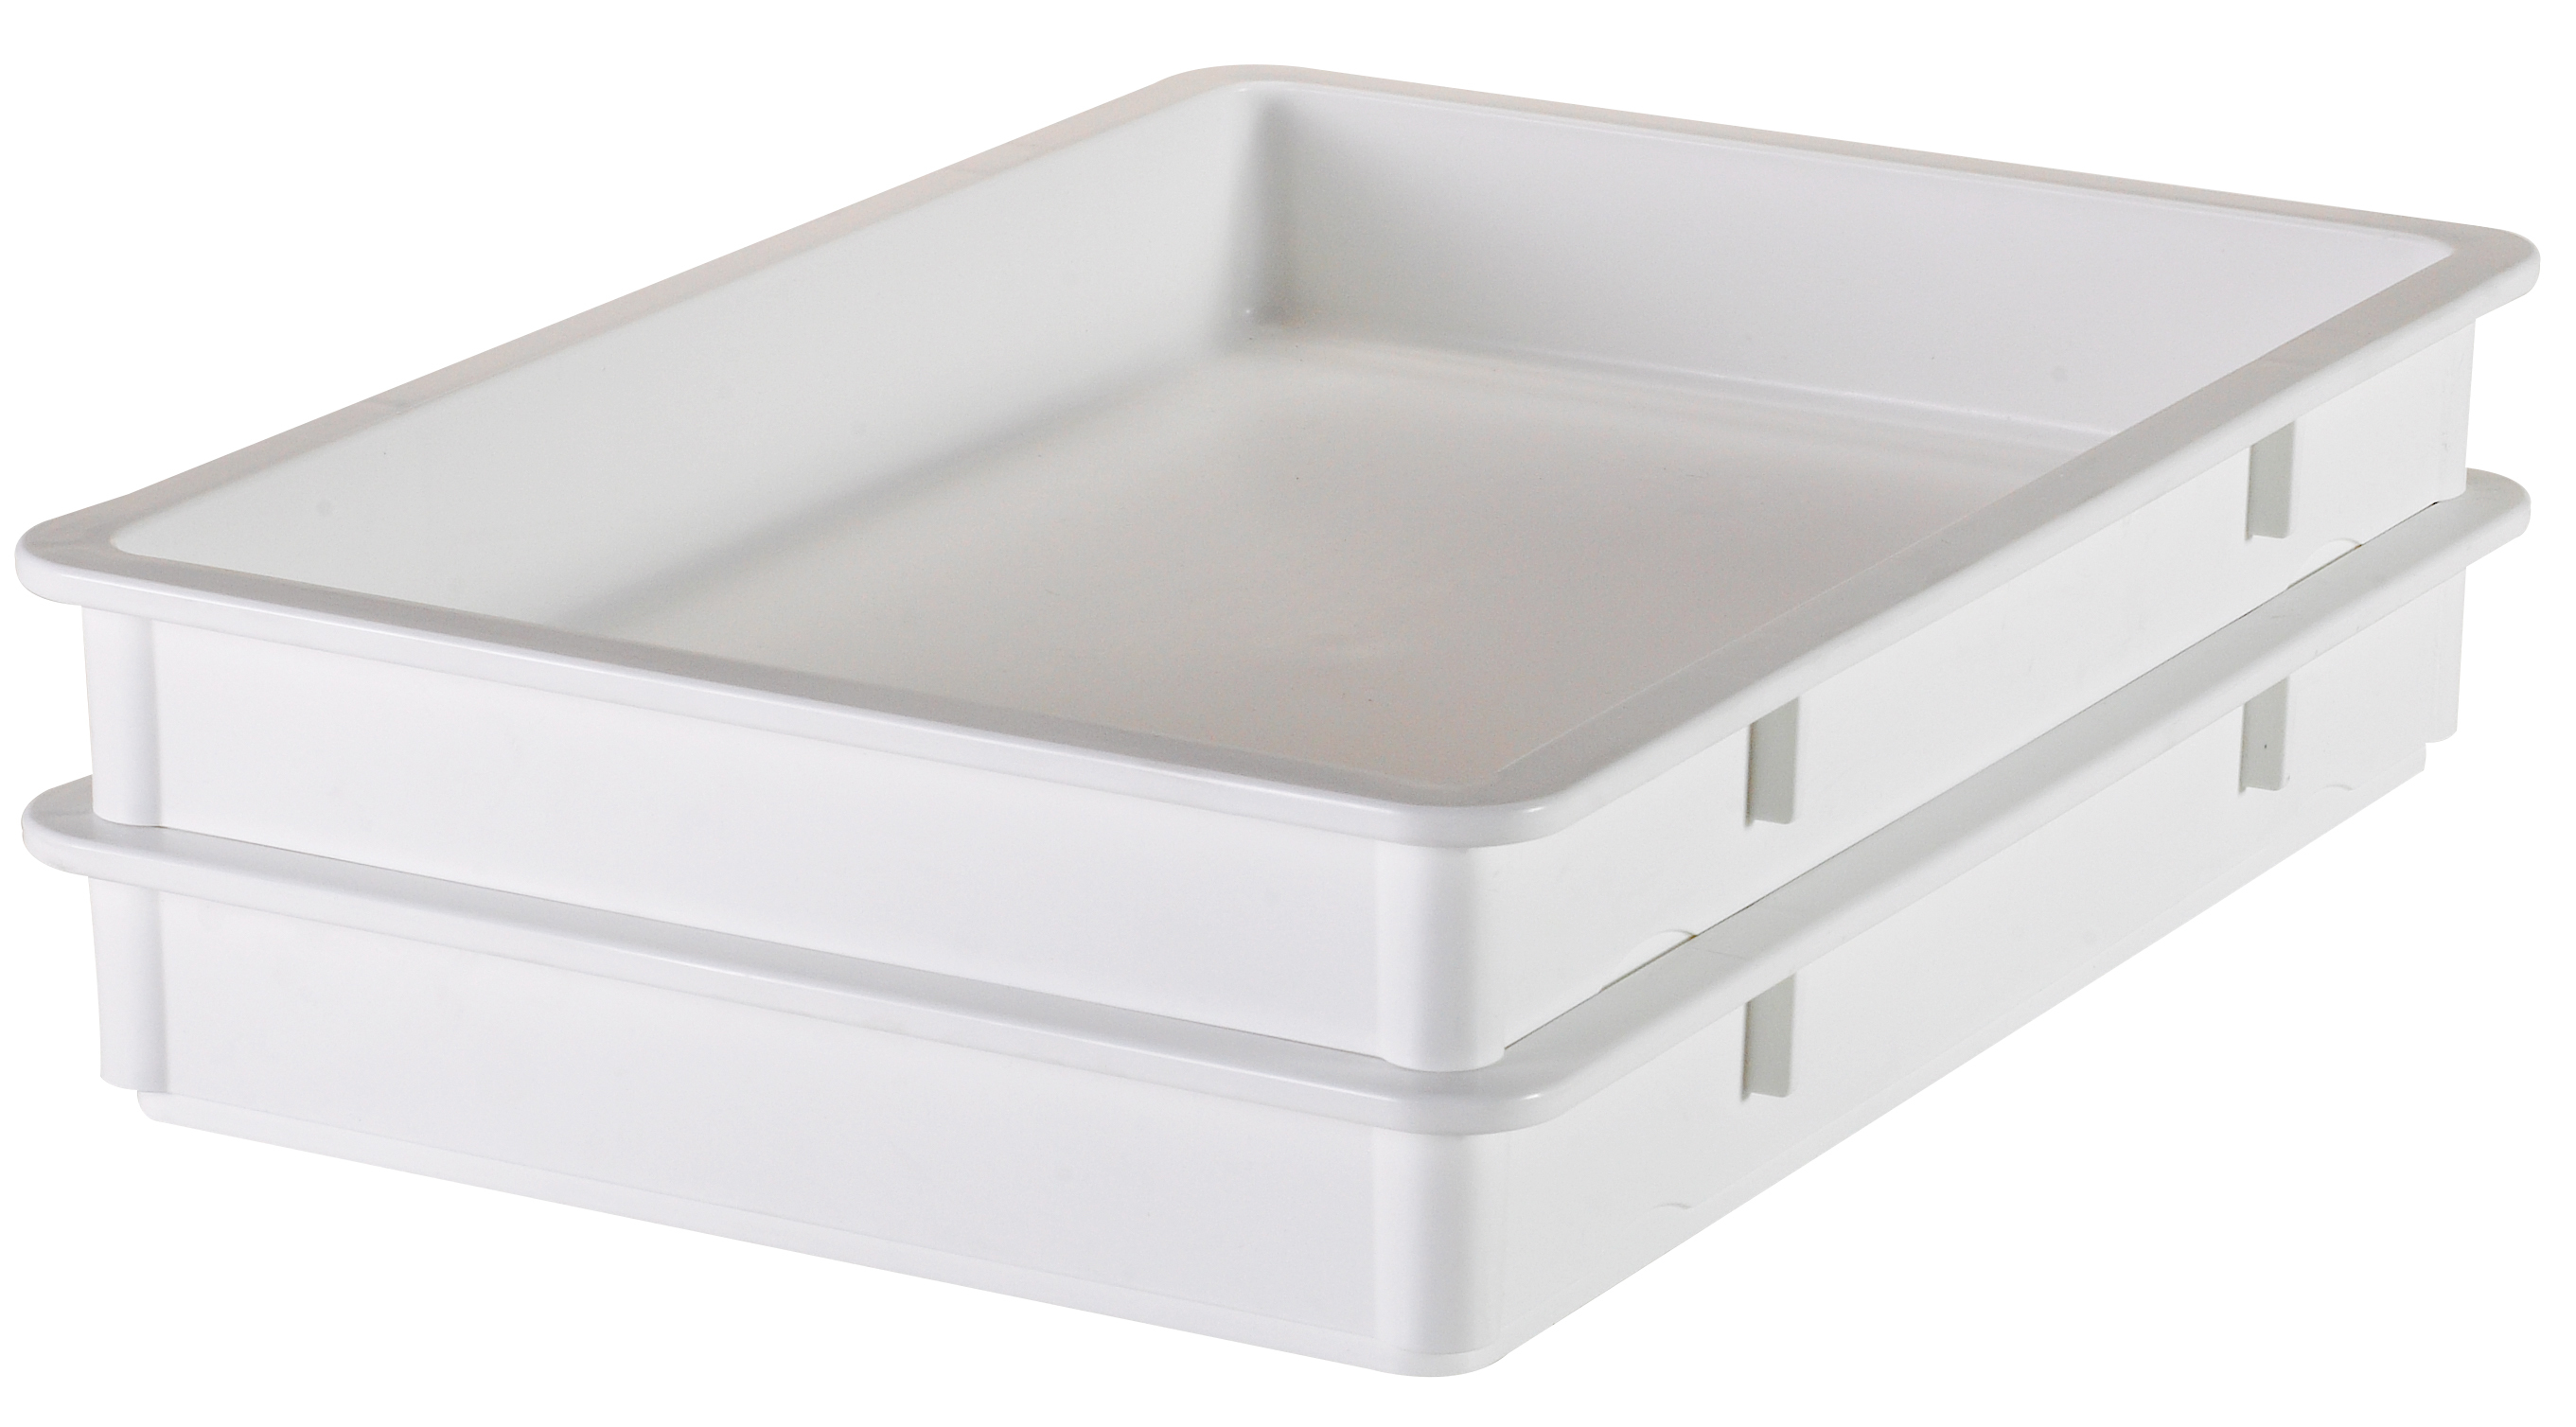 Cambro DB18263P148 food/beverage storage container